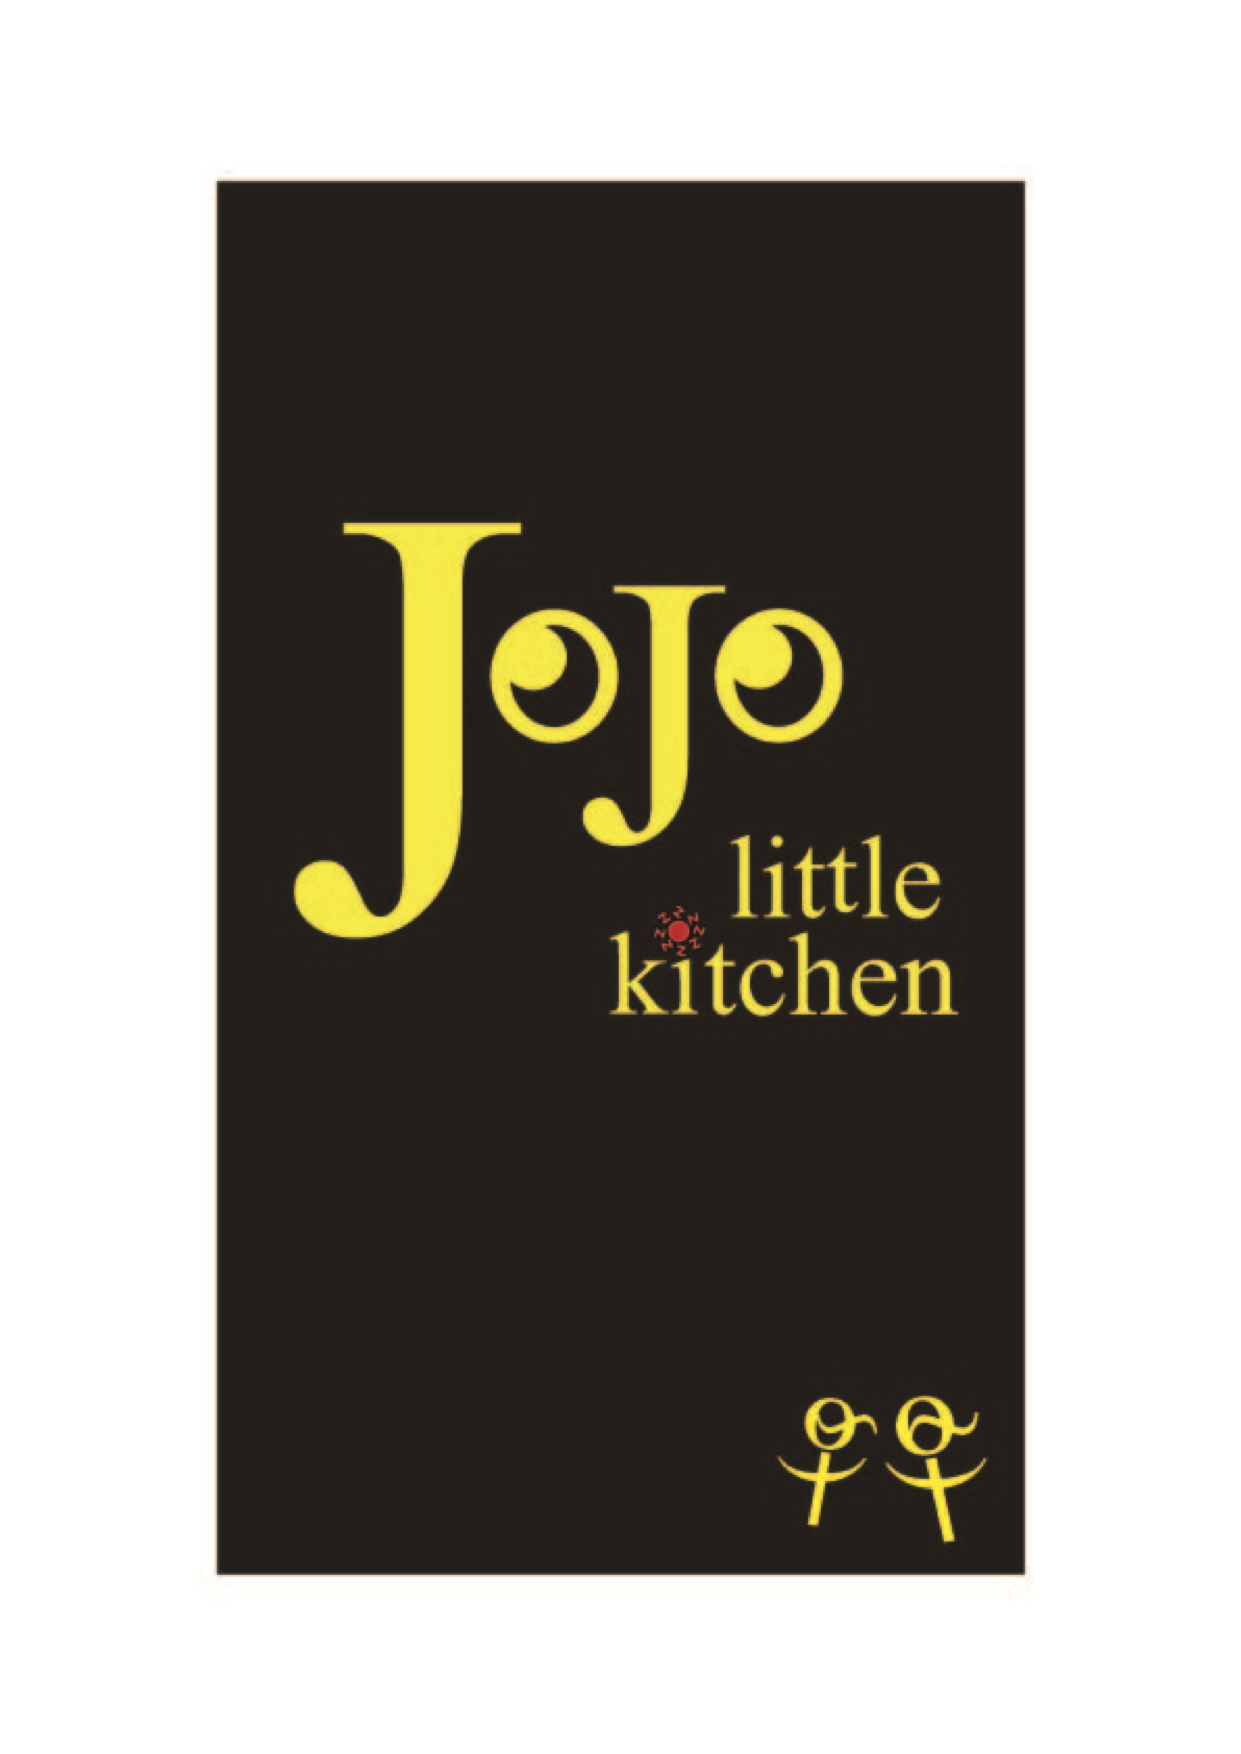 Jojo Little Kitchen   one free drink with every main meal purchase